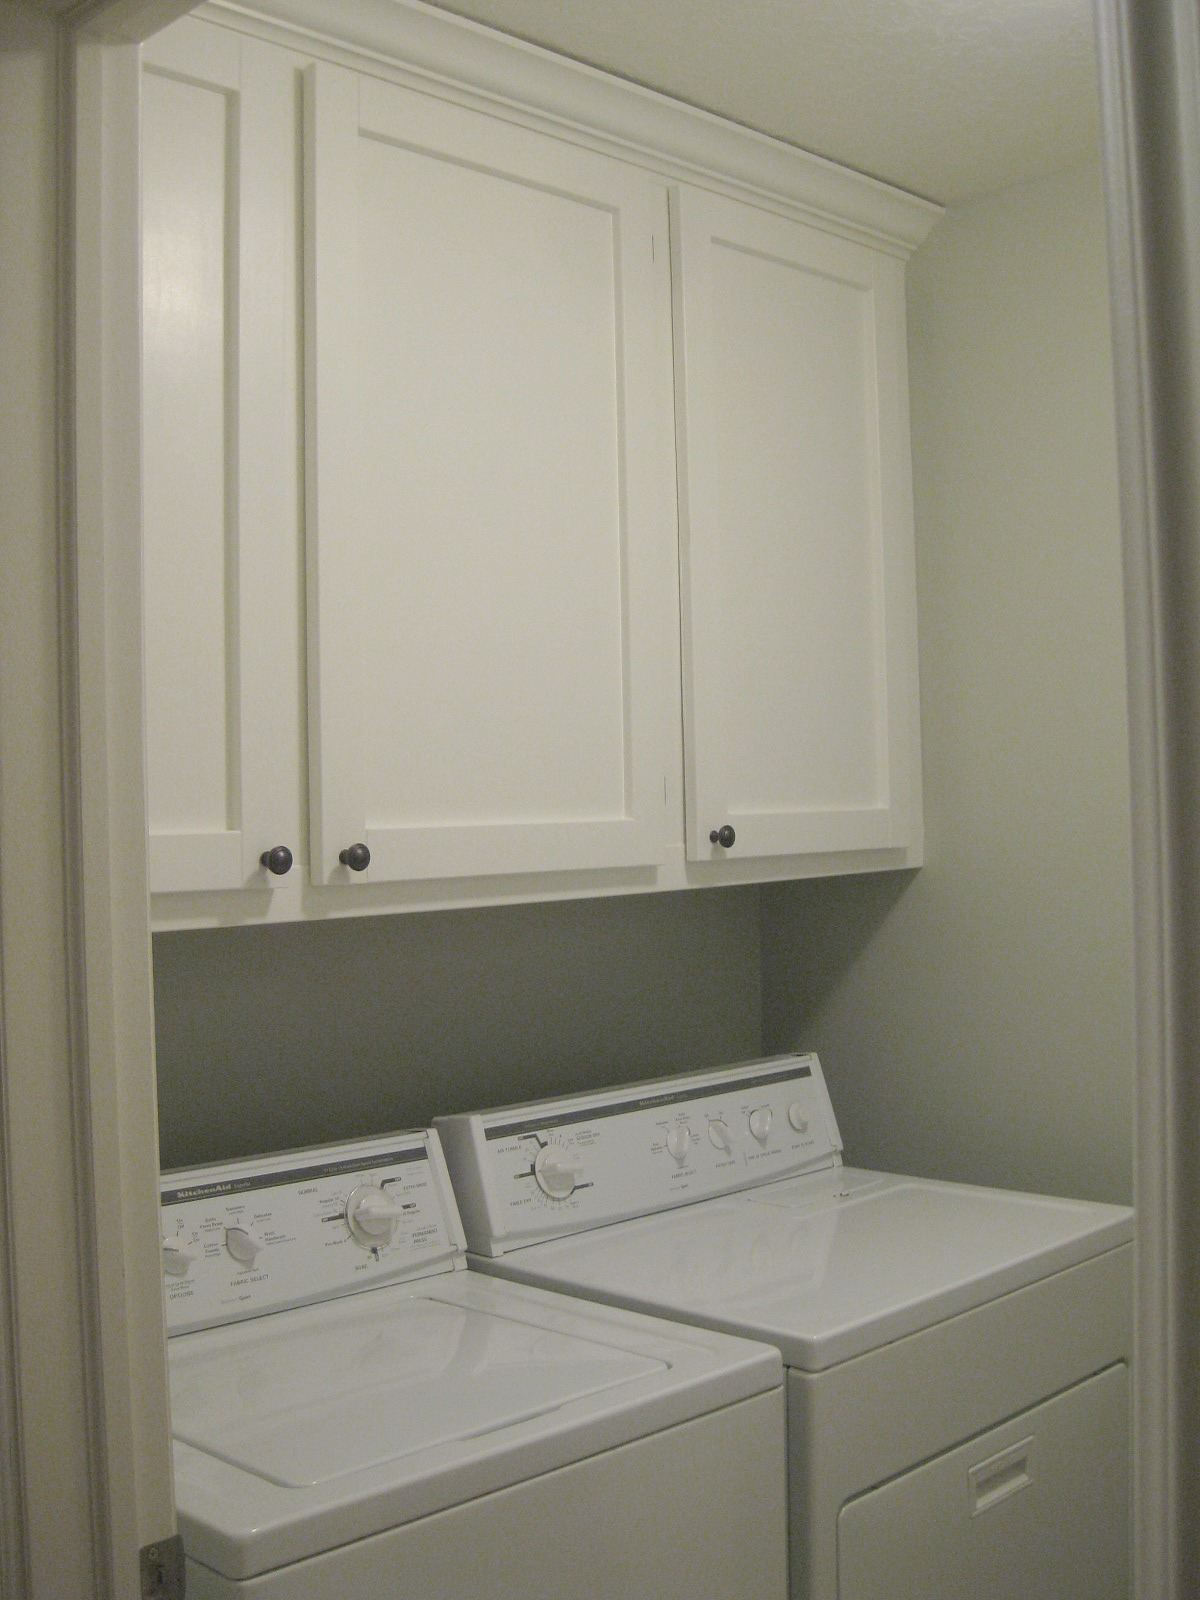 tda decorating and design laundry room custom cabinet reveal. Black Bedroom Furniture Sets. Home Design Ideas